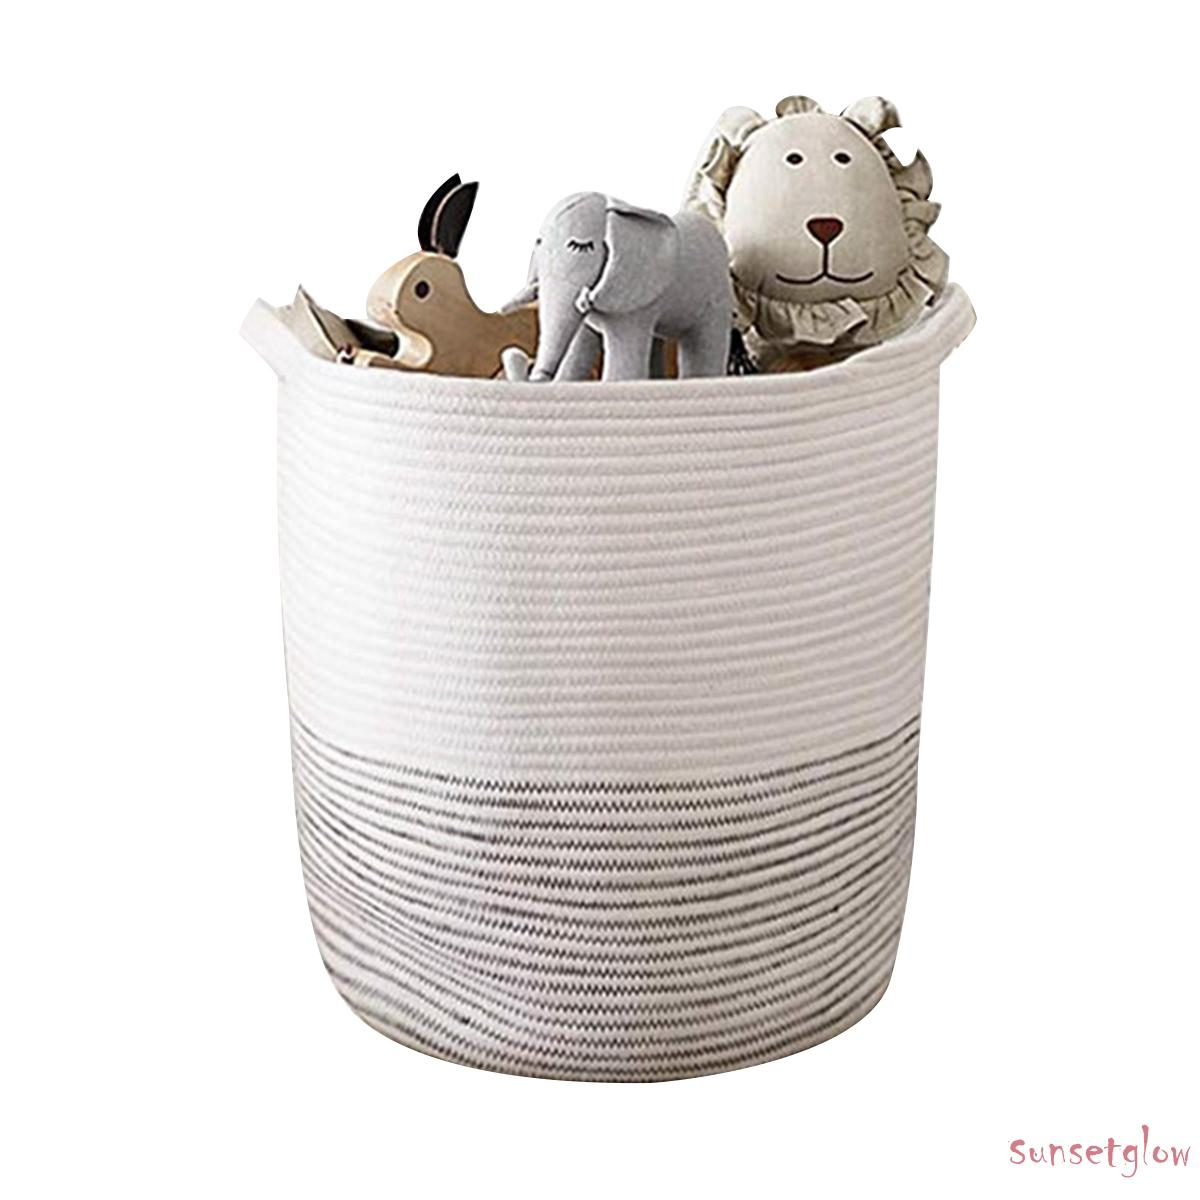 Cotton Rope Basket Storage Basket With Handles Decorative Blanket Basket For Living Room Laundry And Nursery Decor Shopee Philippines